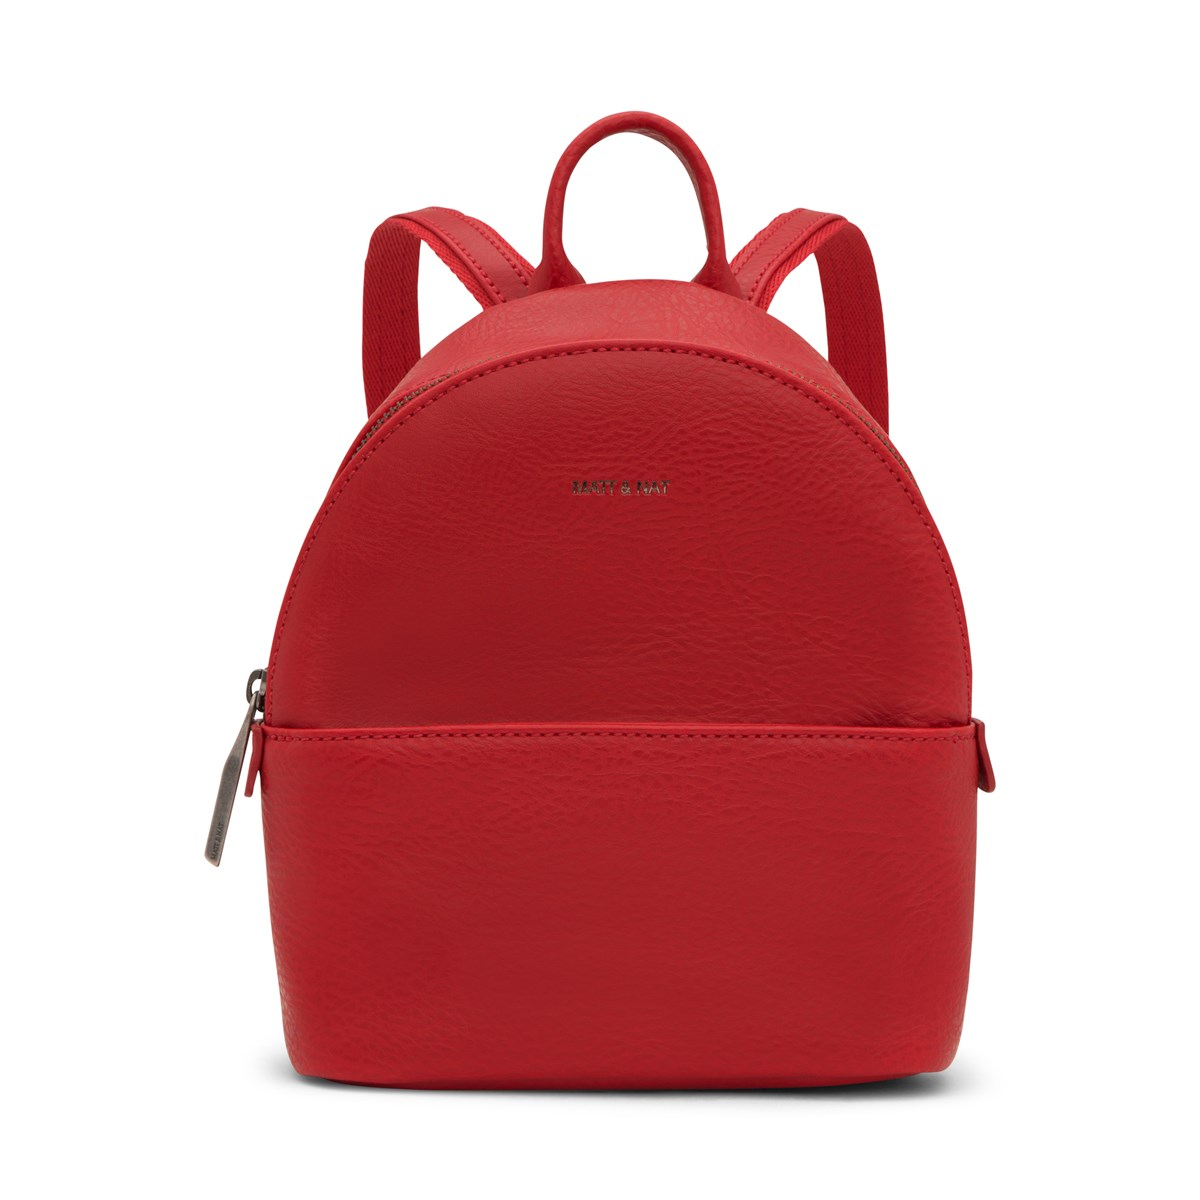 July Mini Backpack in Red